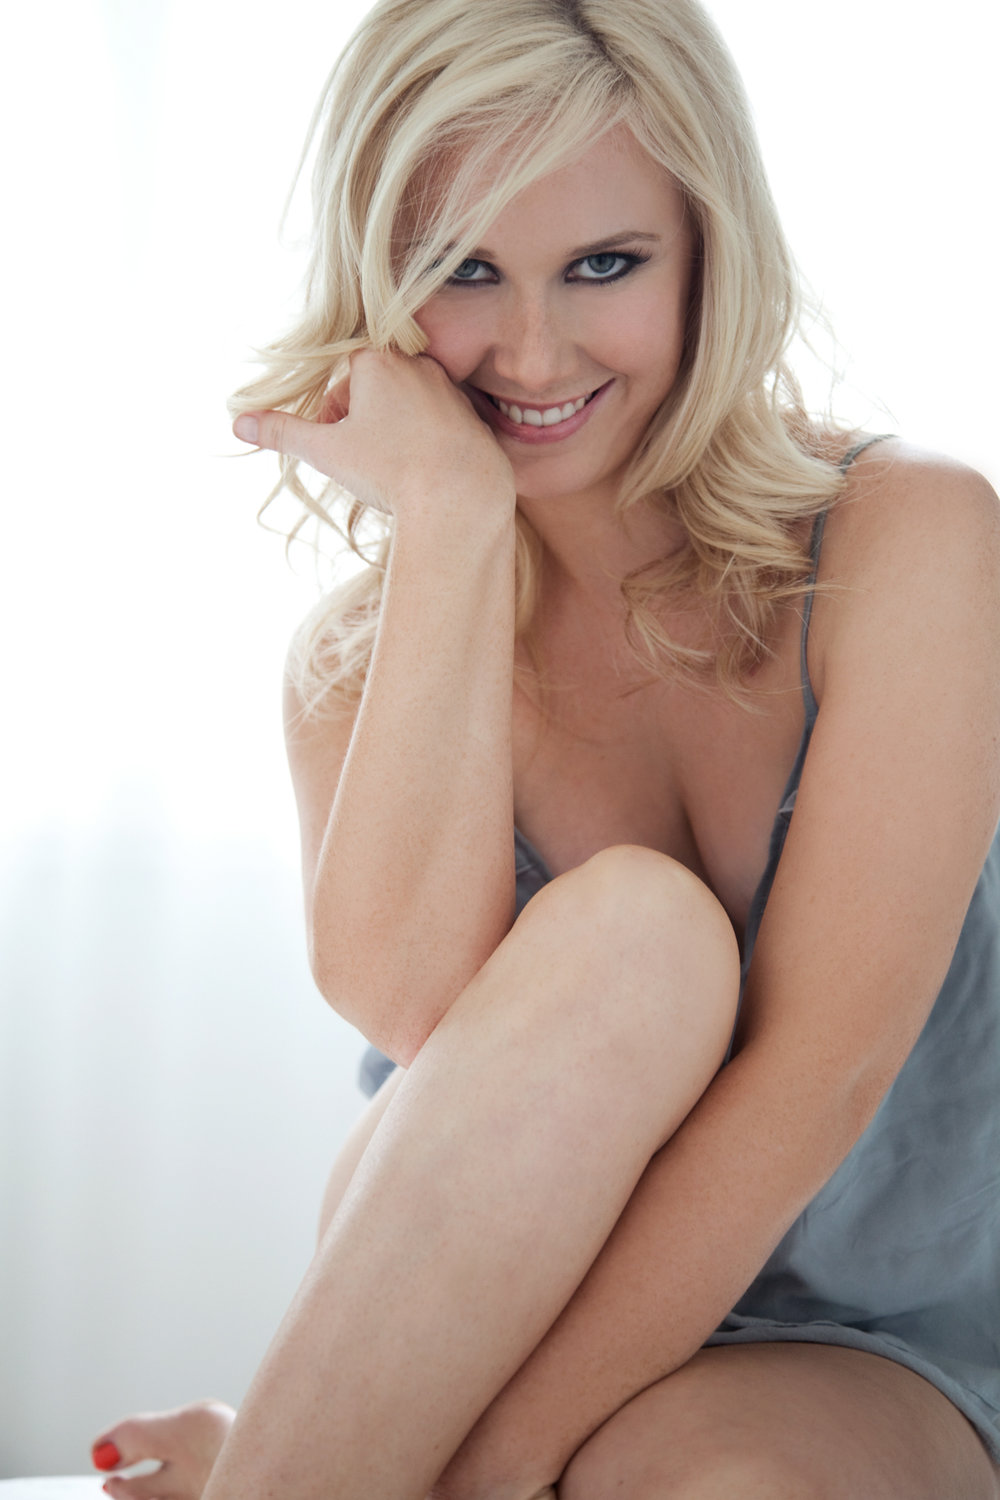 professional photo of blond woman with cheeky smile